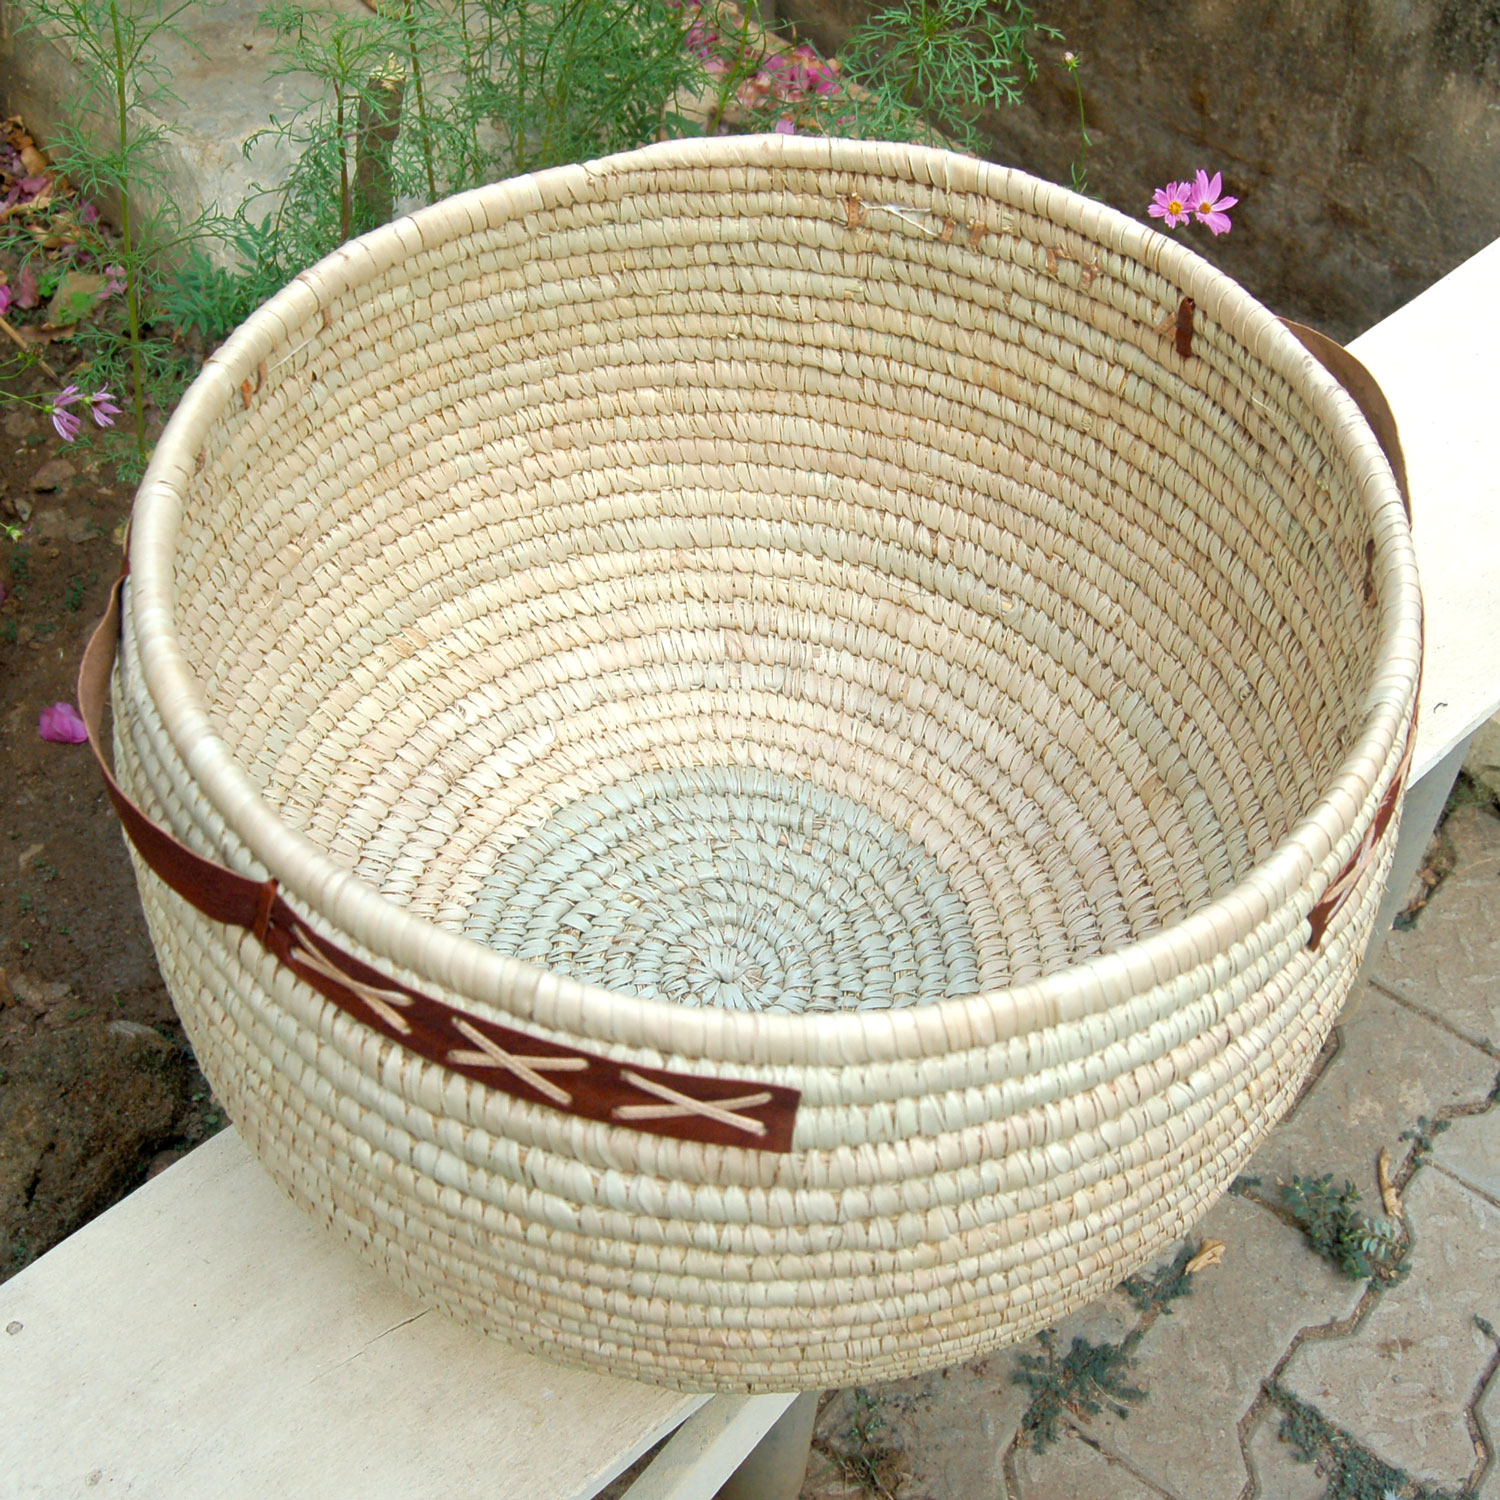 AfriMod Natural #3: Classic Cross-Stitch – Large Lidded Storage Basket